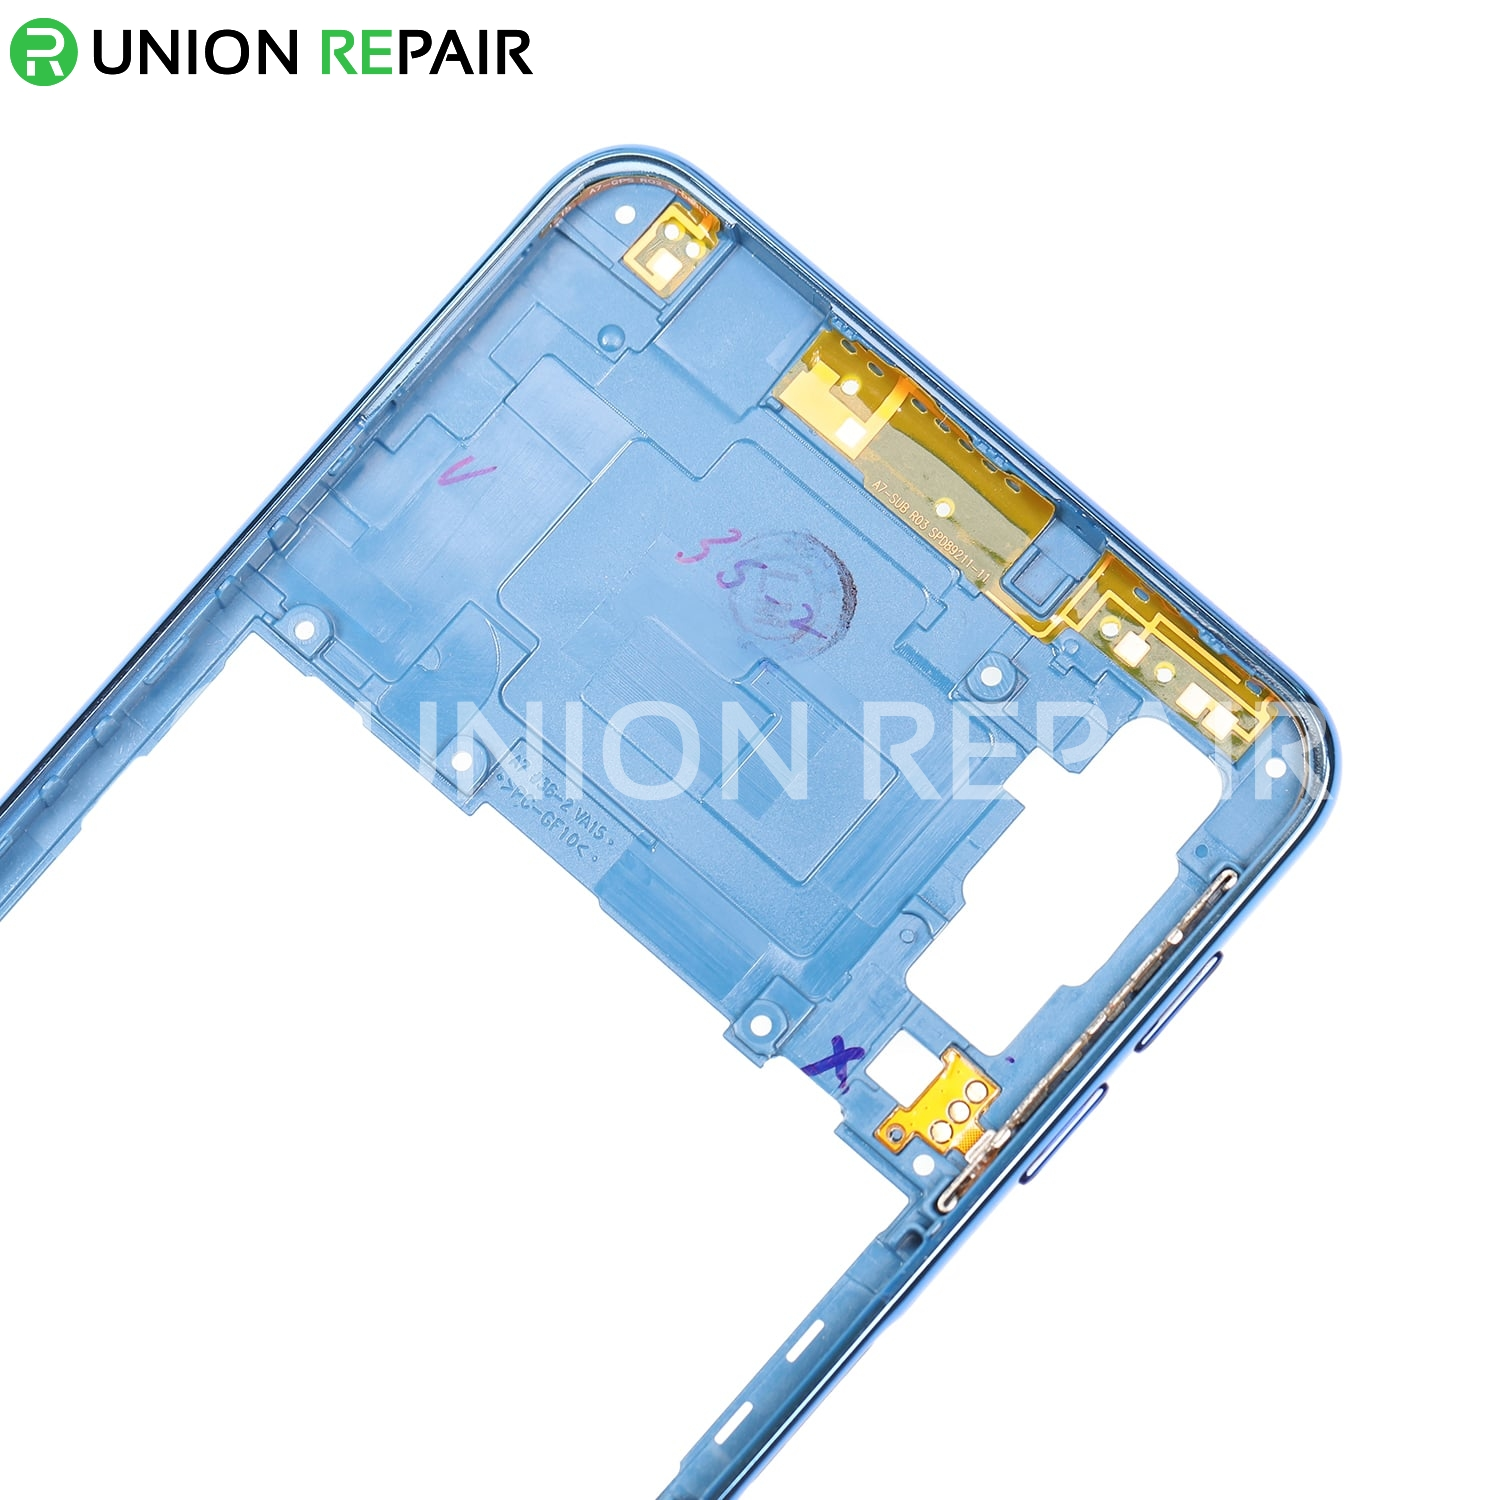 Replacement for Samsung Galaxy A7 (2018) SM-A750 Rear Housing - Blue